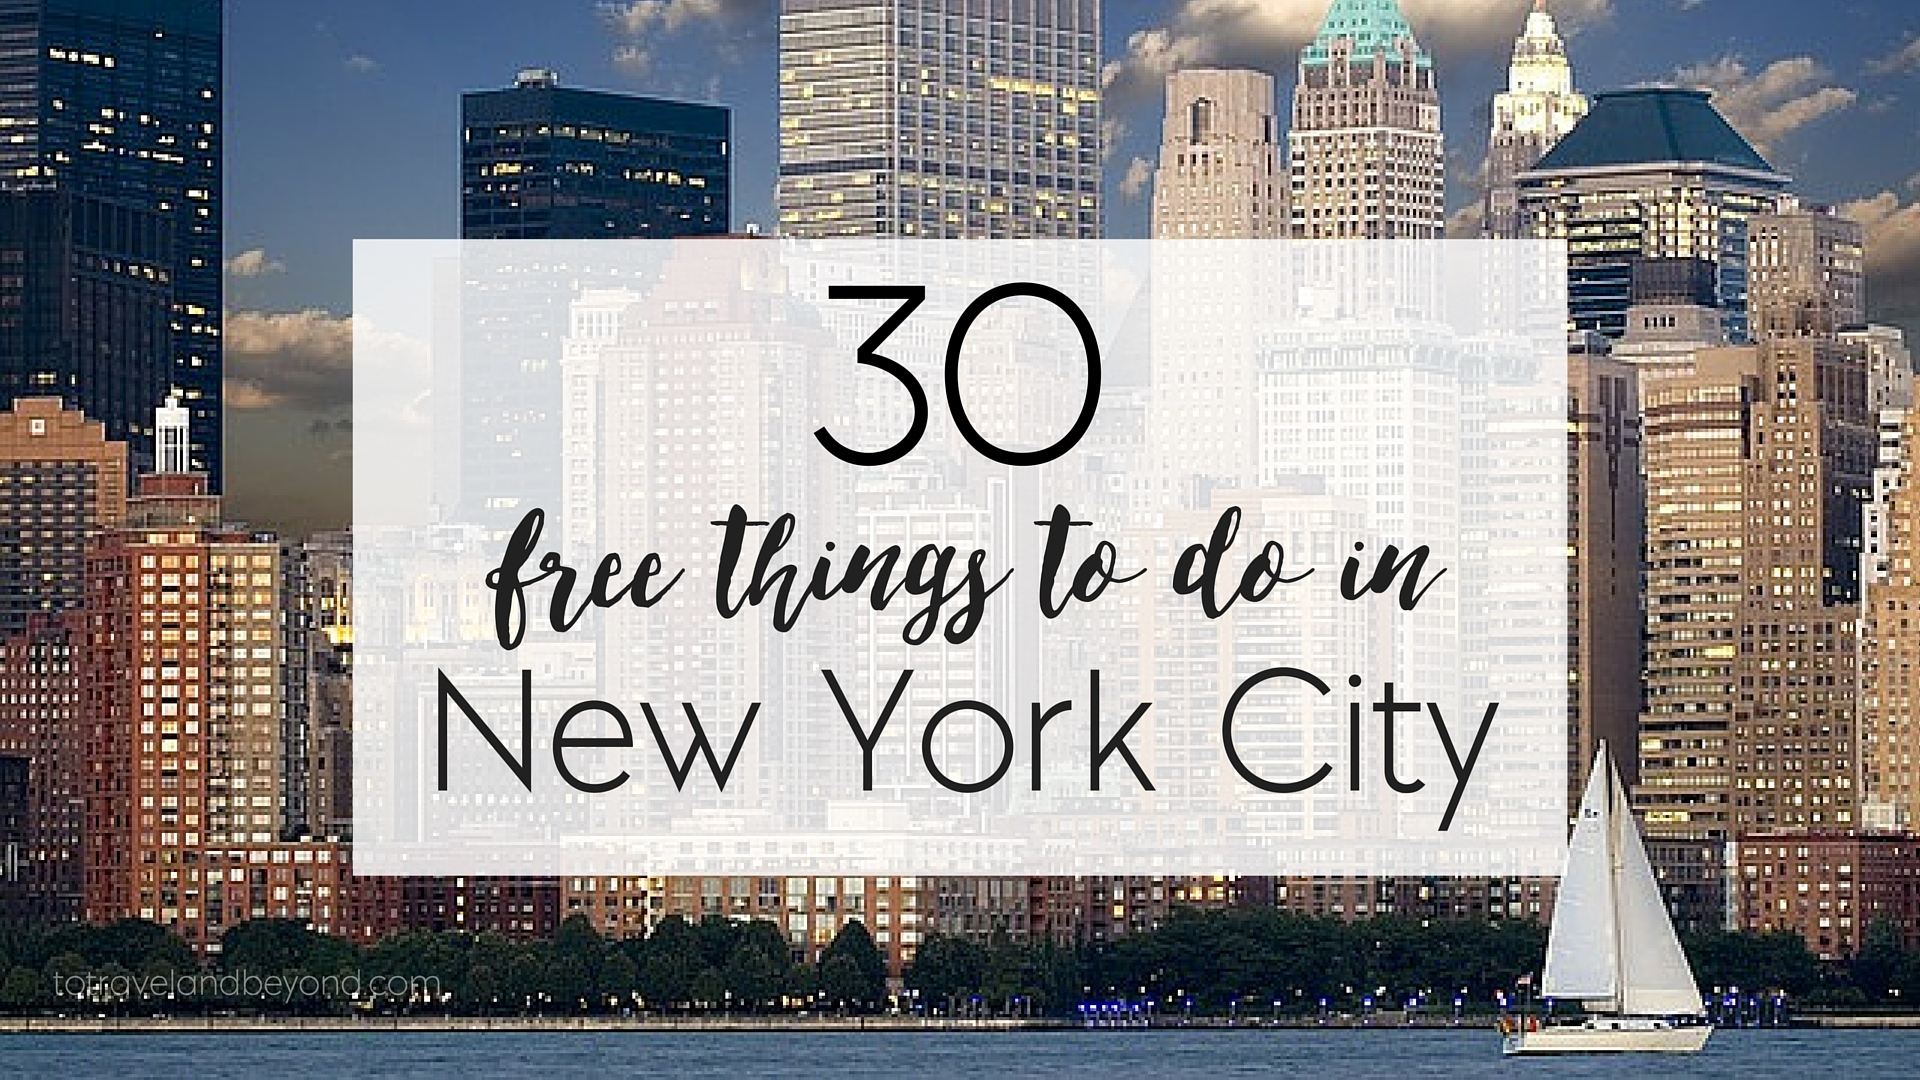 Free things to do today in new york city